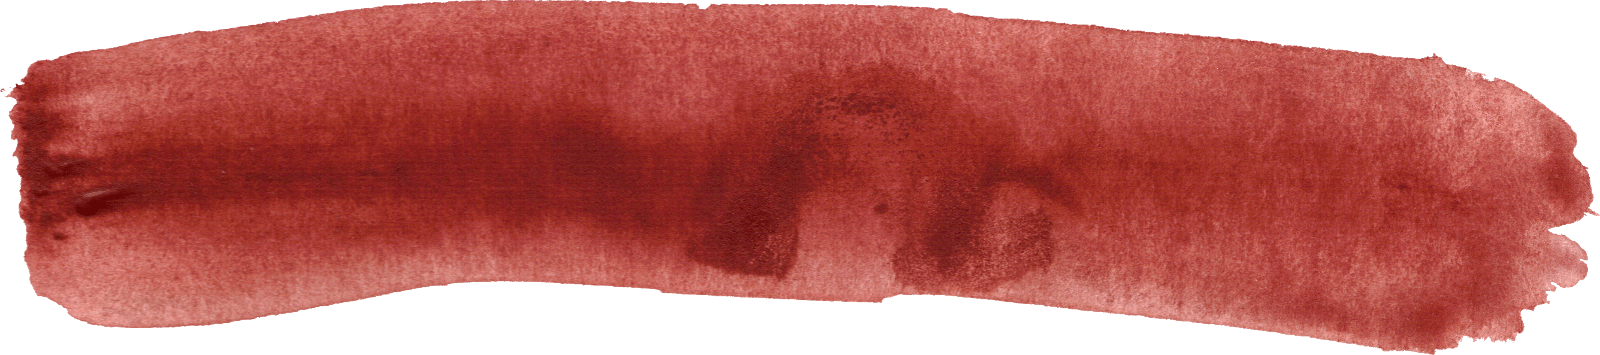 Watercolor brush stroke png. Red transparent stickpng download